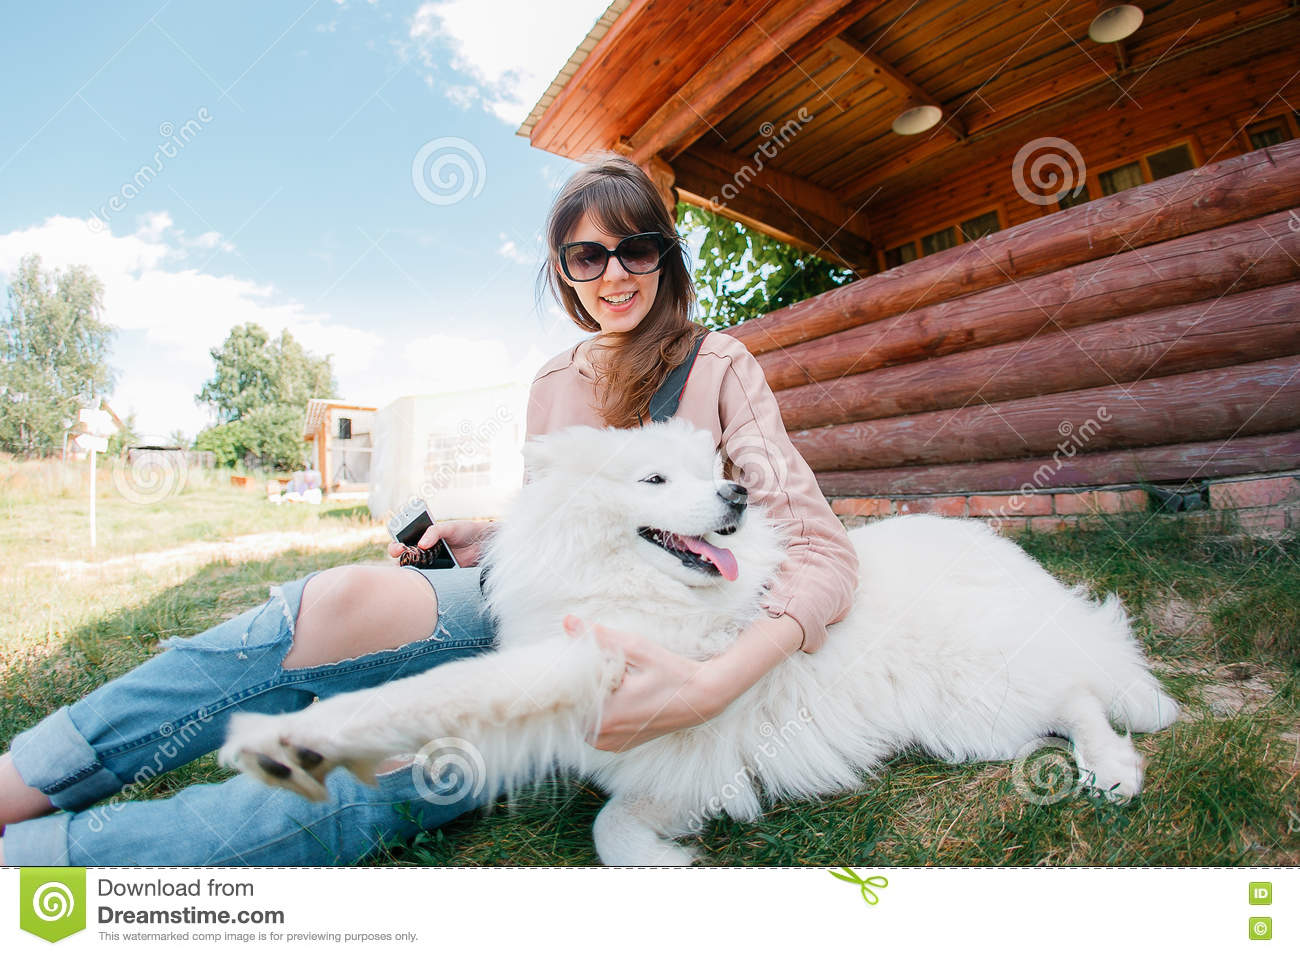 Young stylish hipster woman girl playing white kid-skin dog in country side